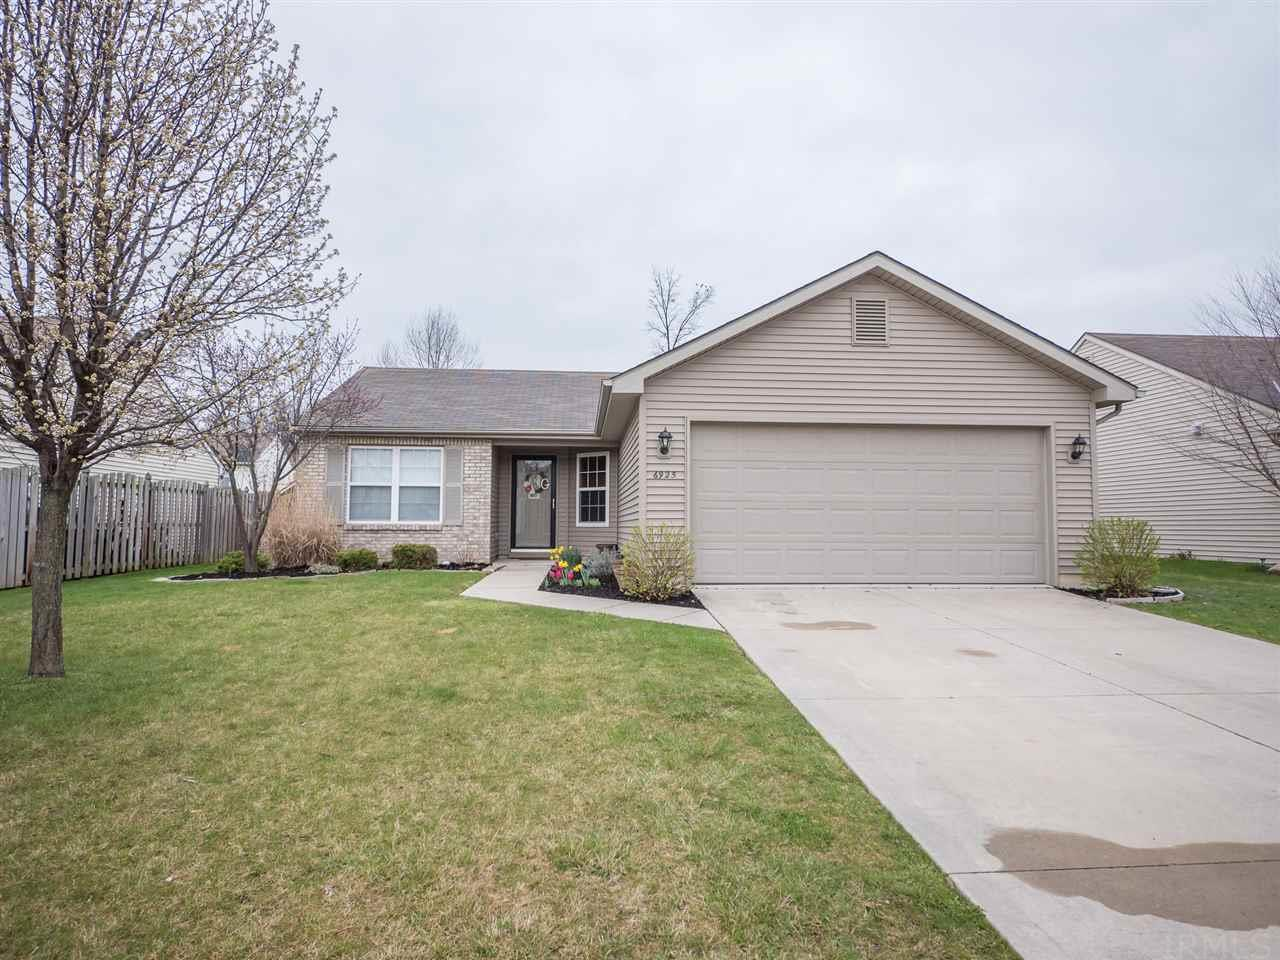 6925 Lotus Blossom Place, Fort Wayne, IN 46835